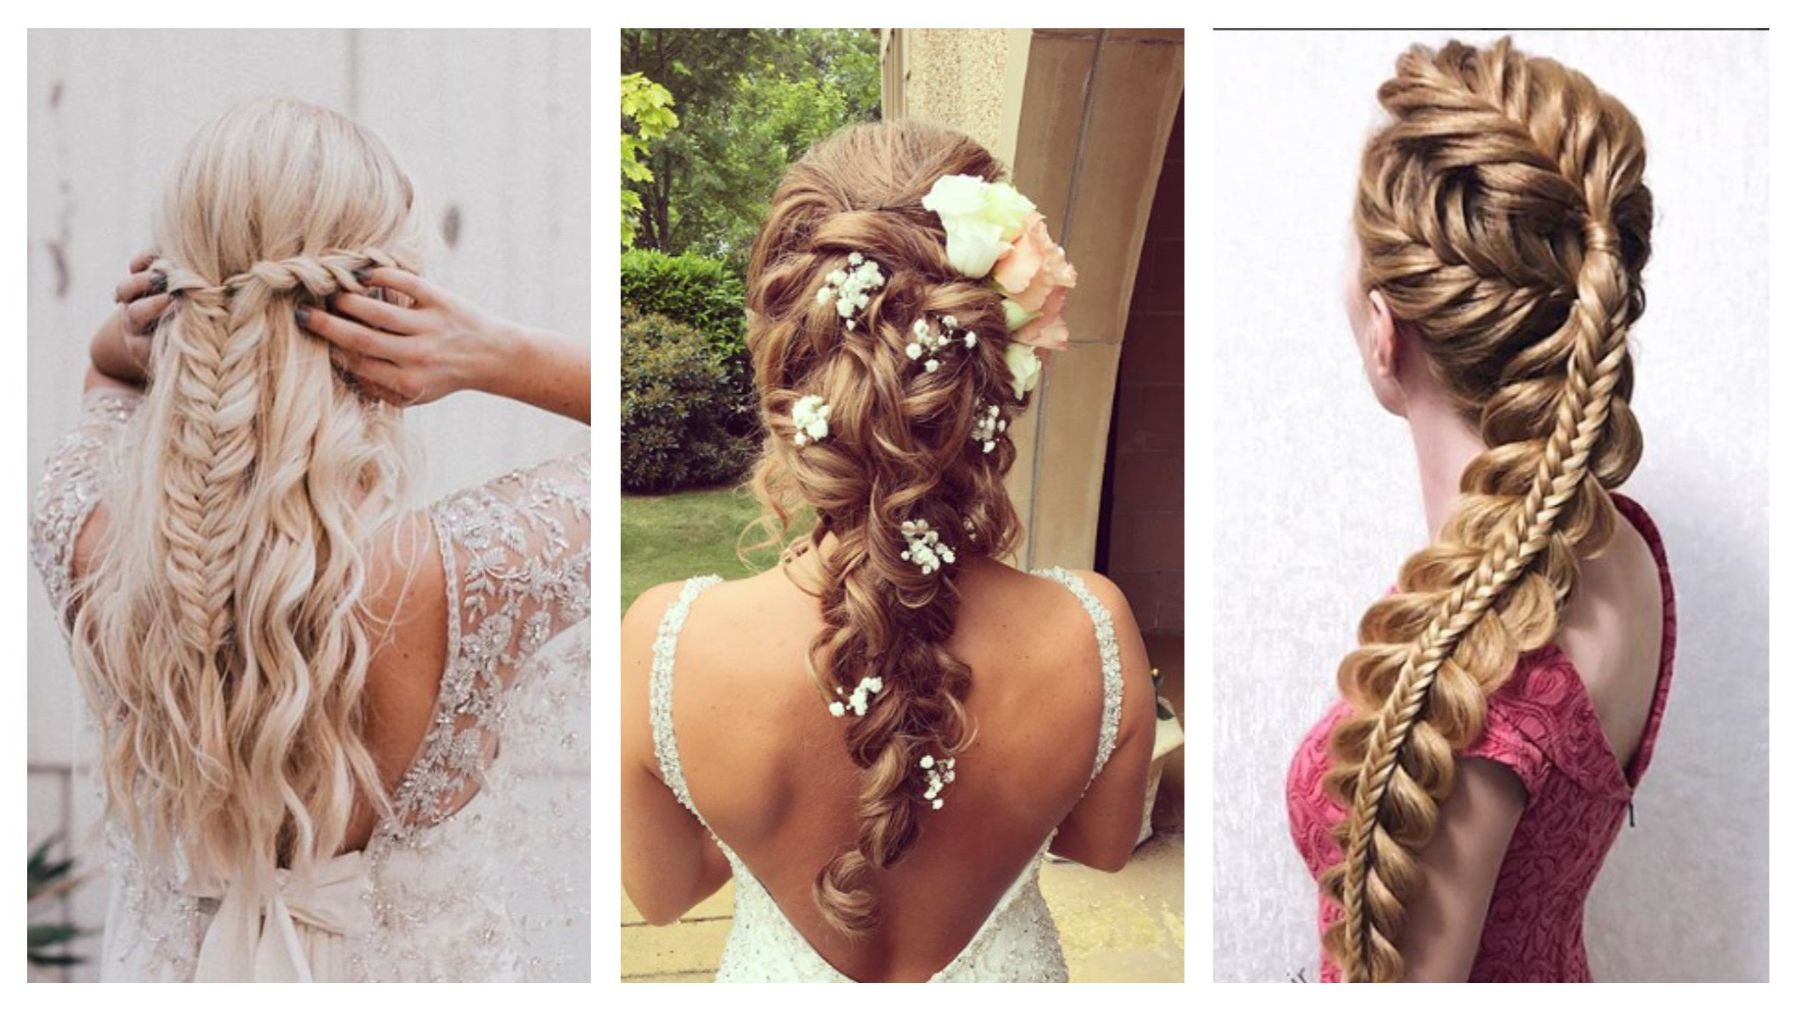 Wedding Guest Hairstyles.Wedding Guest Hair A Step By Step Guide To The Ultimate Braid Closer